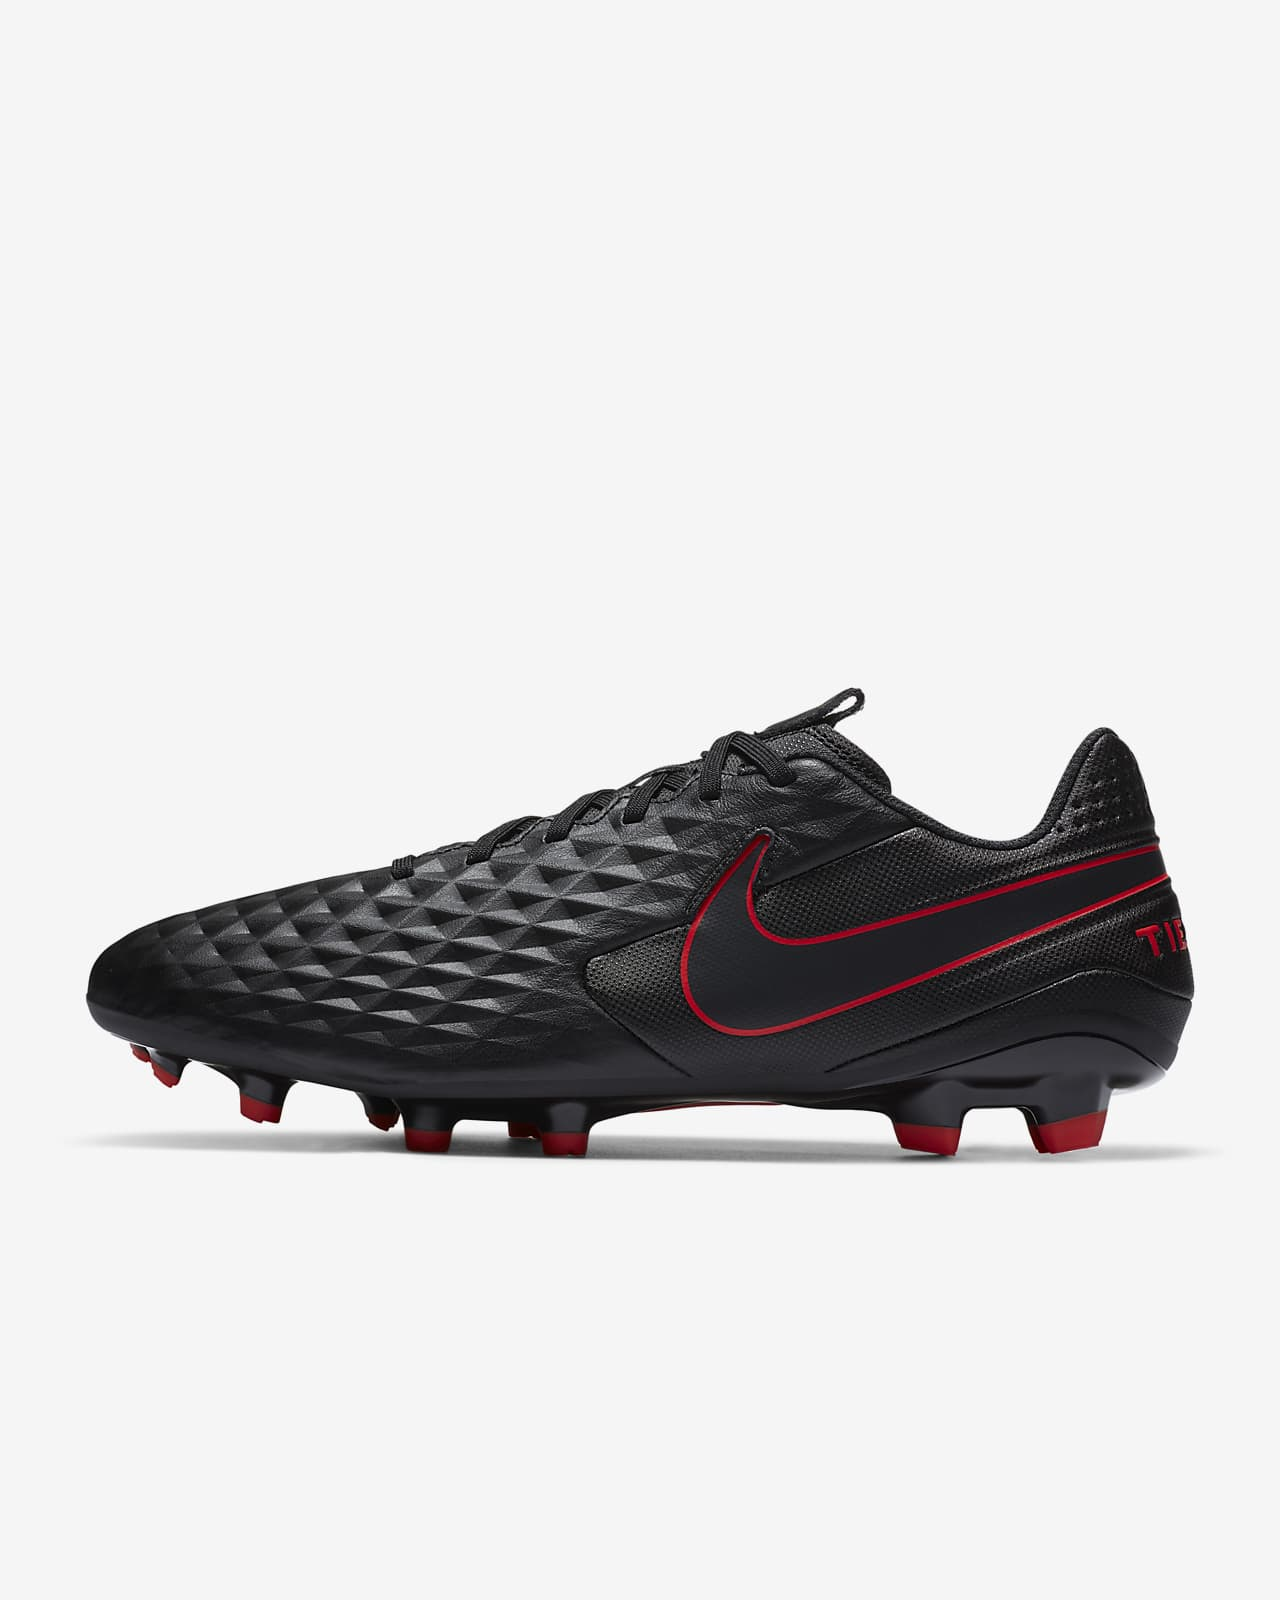 Chaussure de football multi-surfaces à crampons Nike Tiempo Legend 8 Academy MG